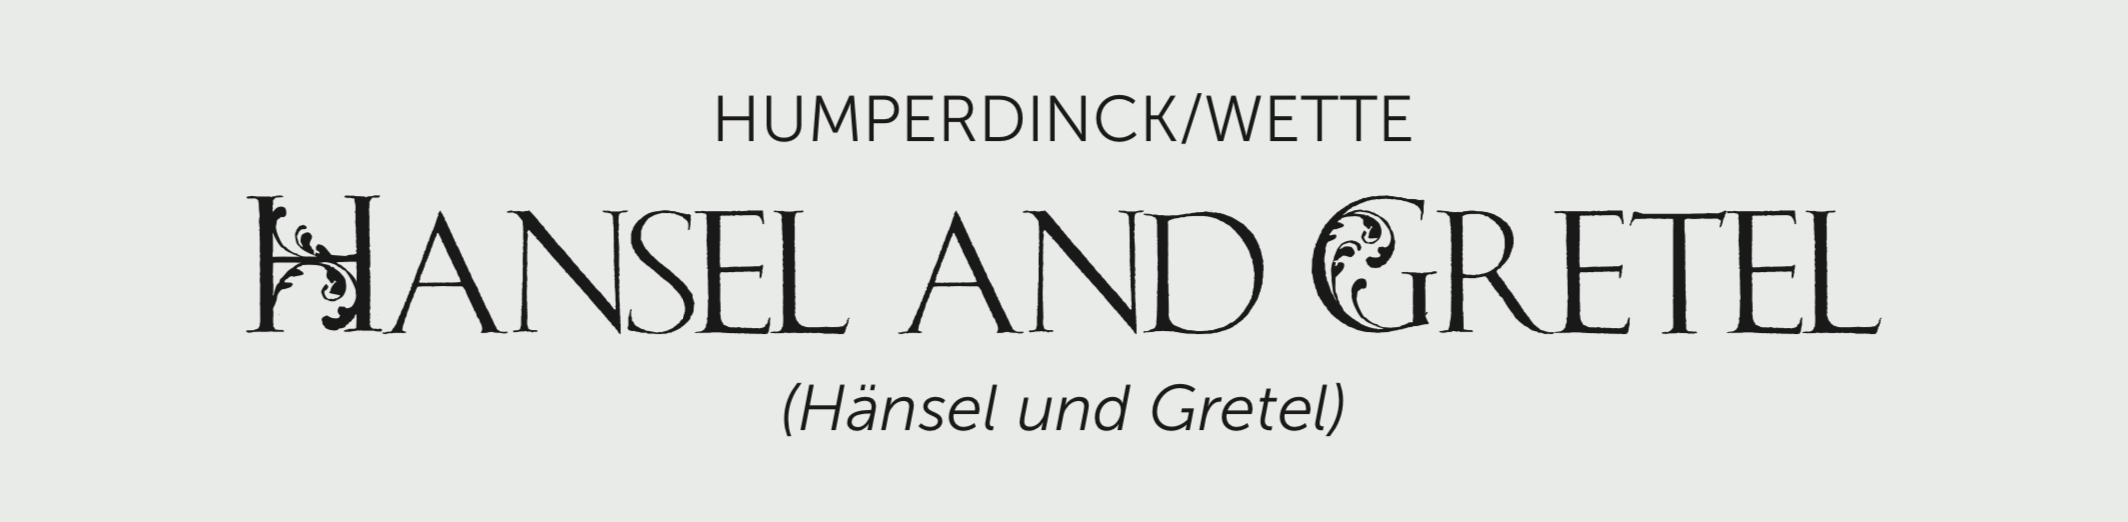 Hansel and Gretel Title Bar